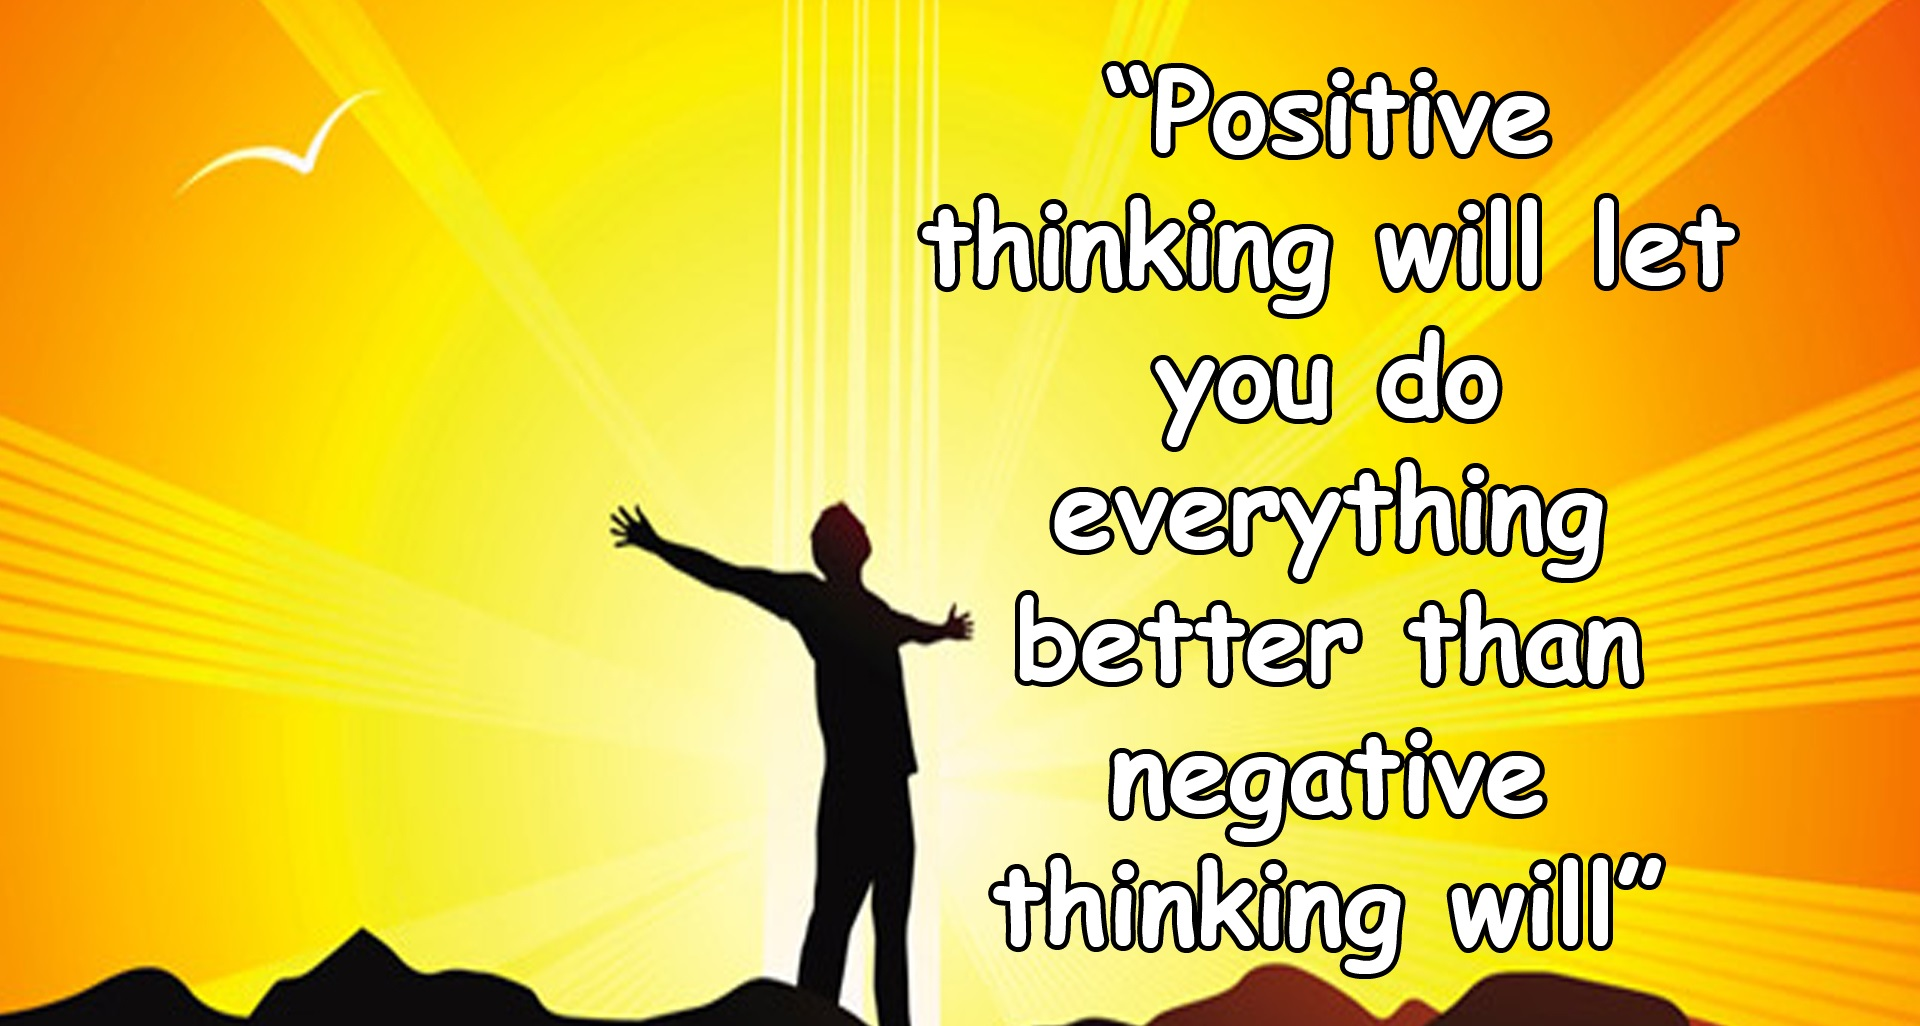 positive thinking how positive thinking builds your skills how positive thinking builds your skills boosts your health and improves your work